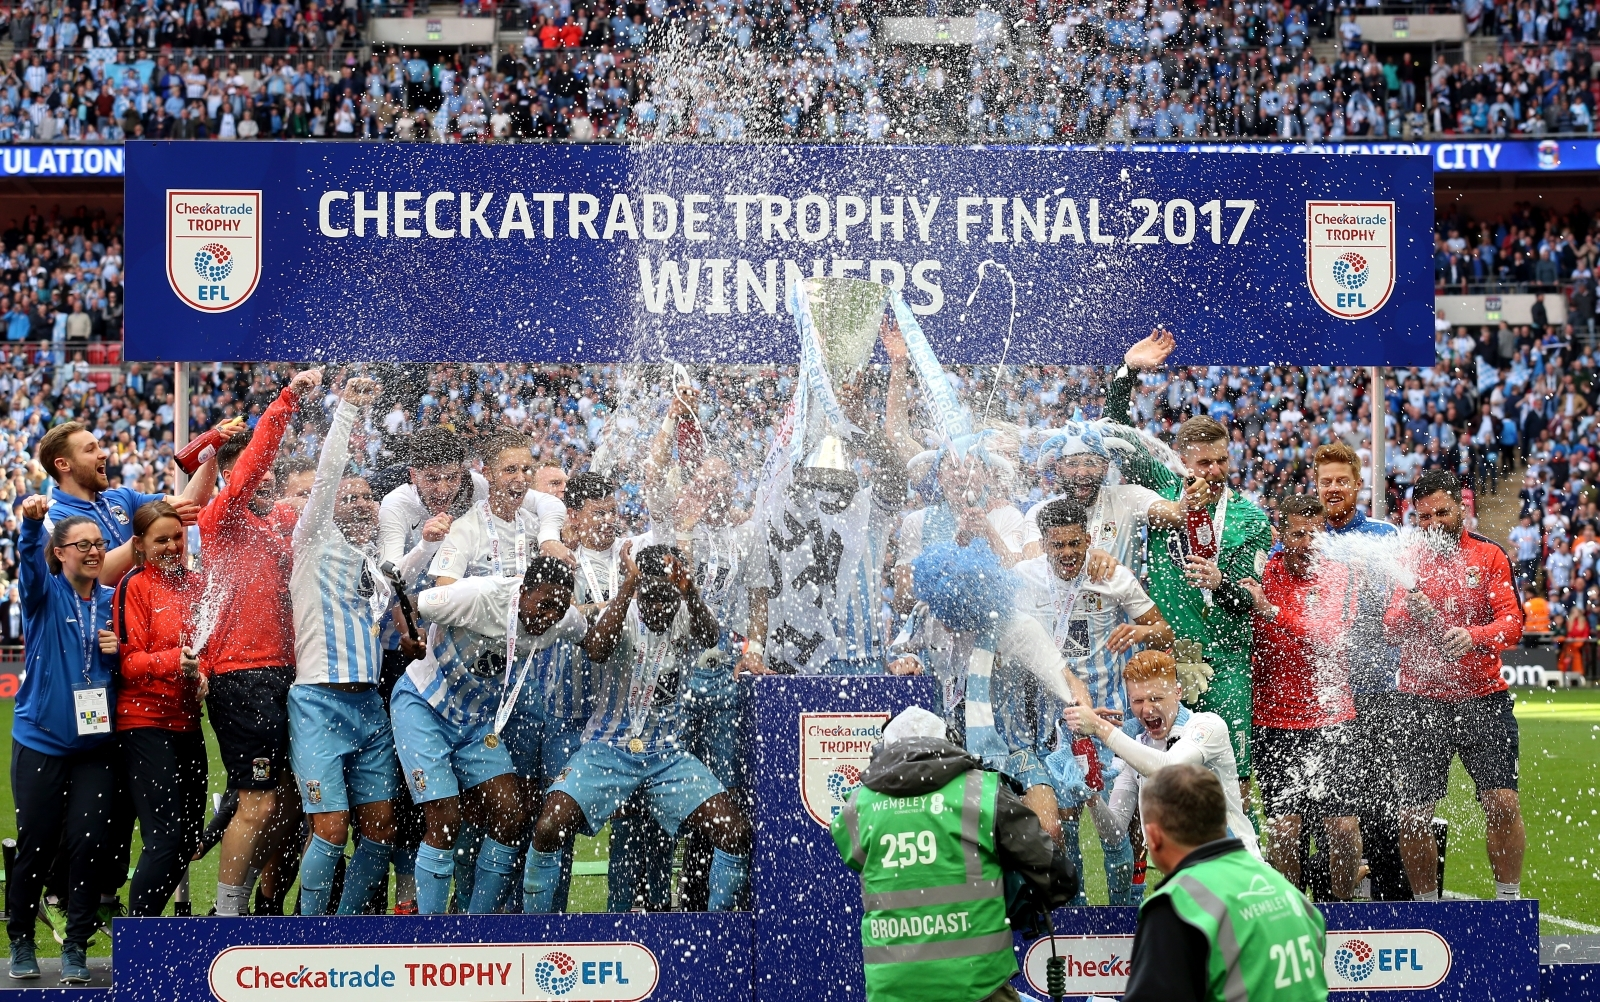 Coventry City players celebrate after winning the Checkatrade Trophy final at Wembley Stadium earlier this year